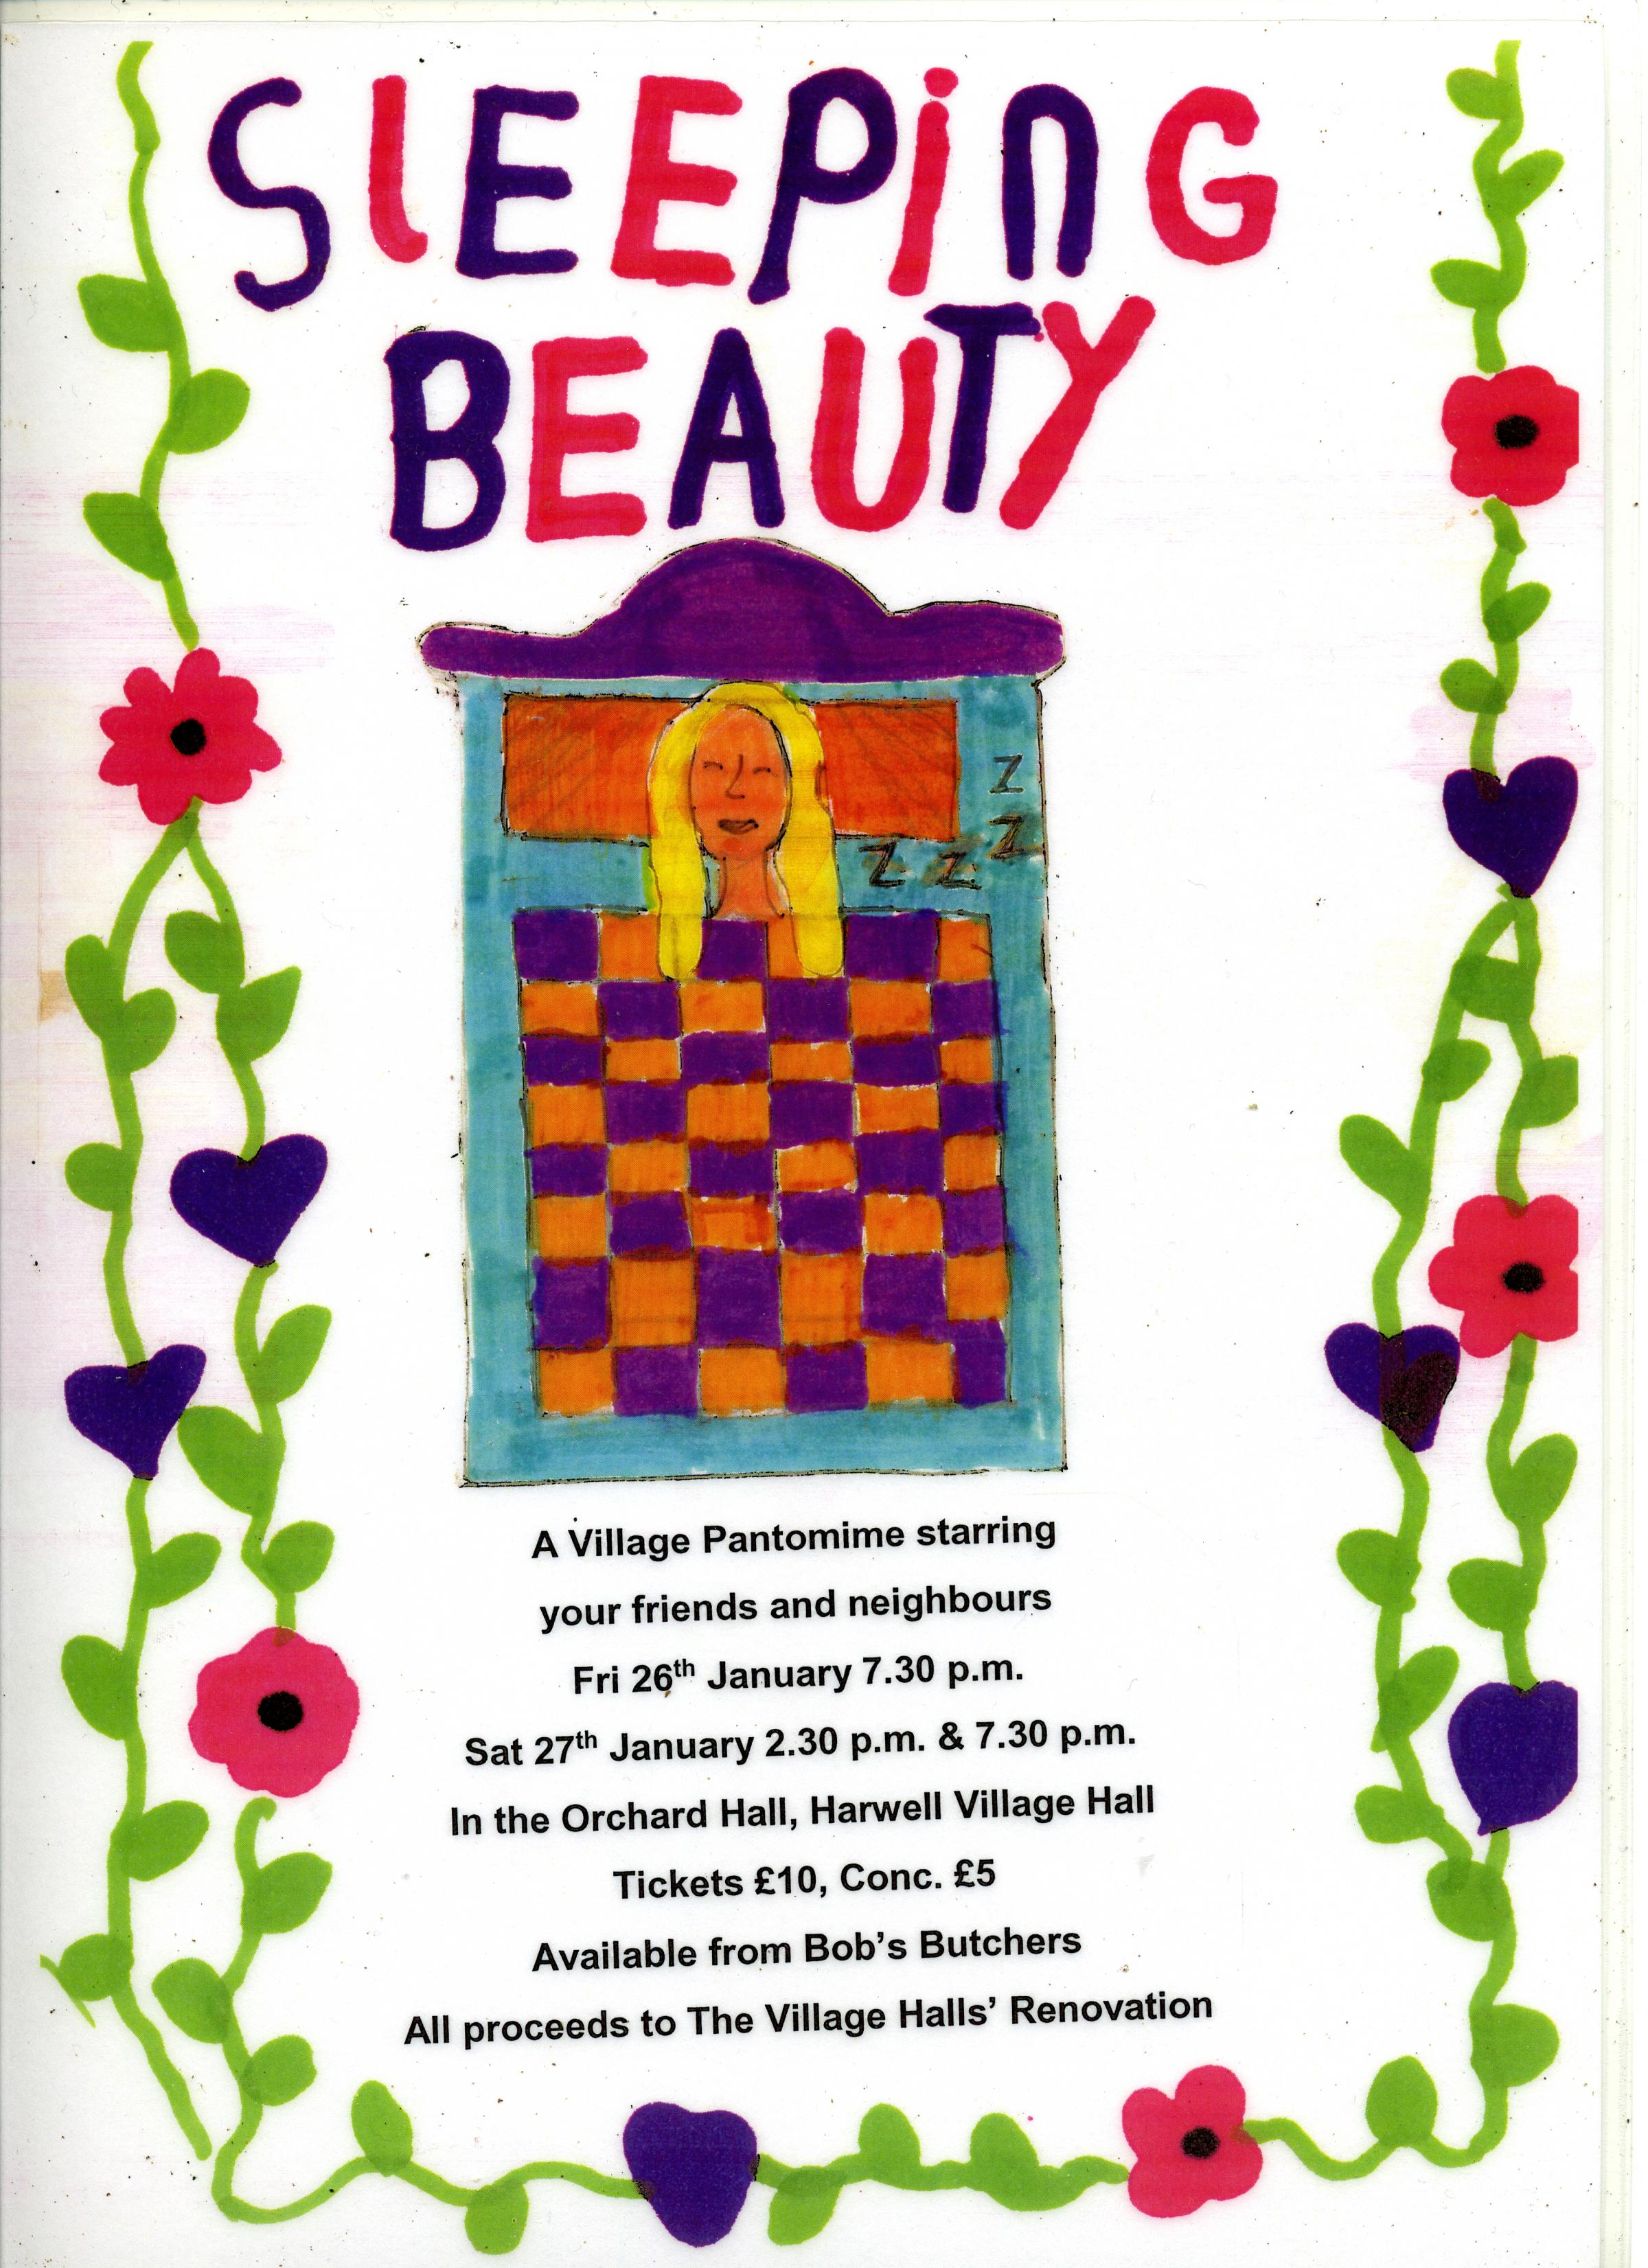 Harwell Village Pantomime - Sleeping Beauty